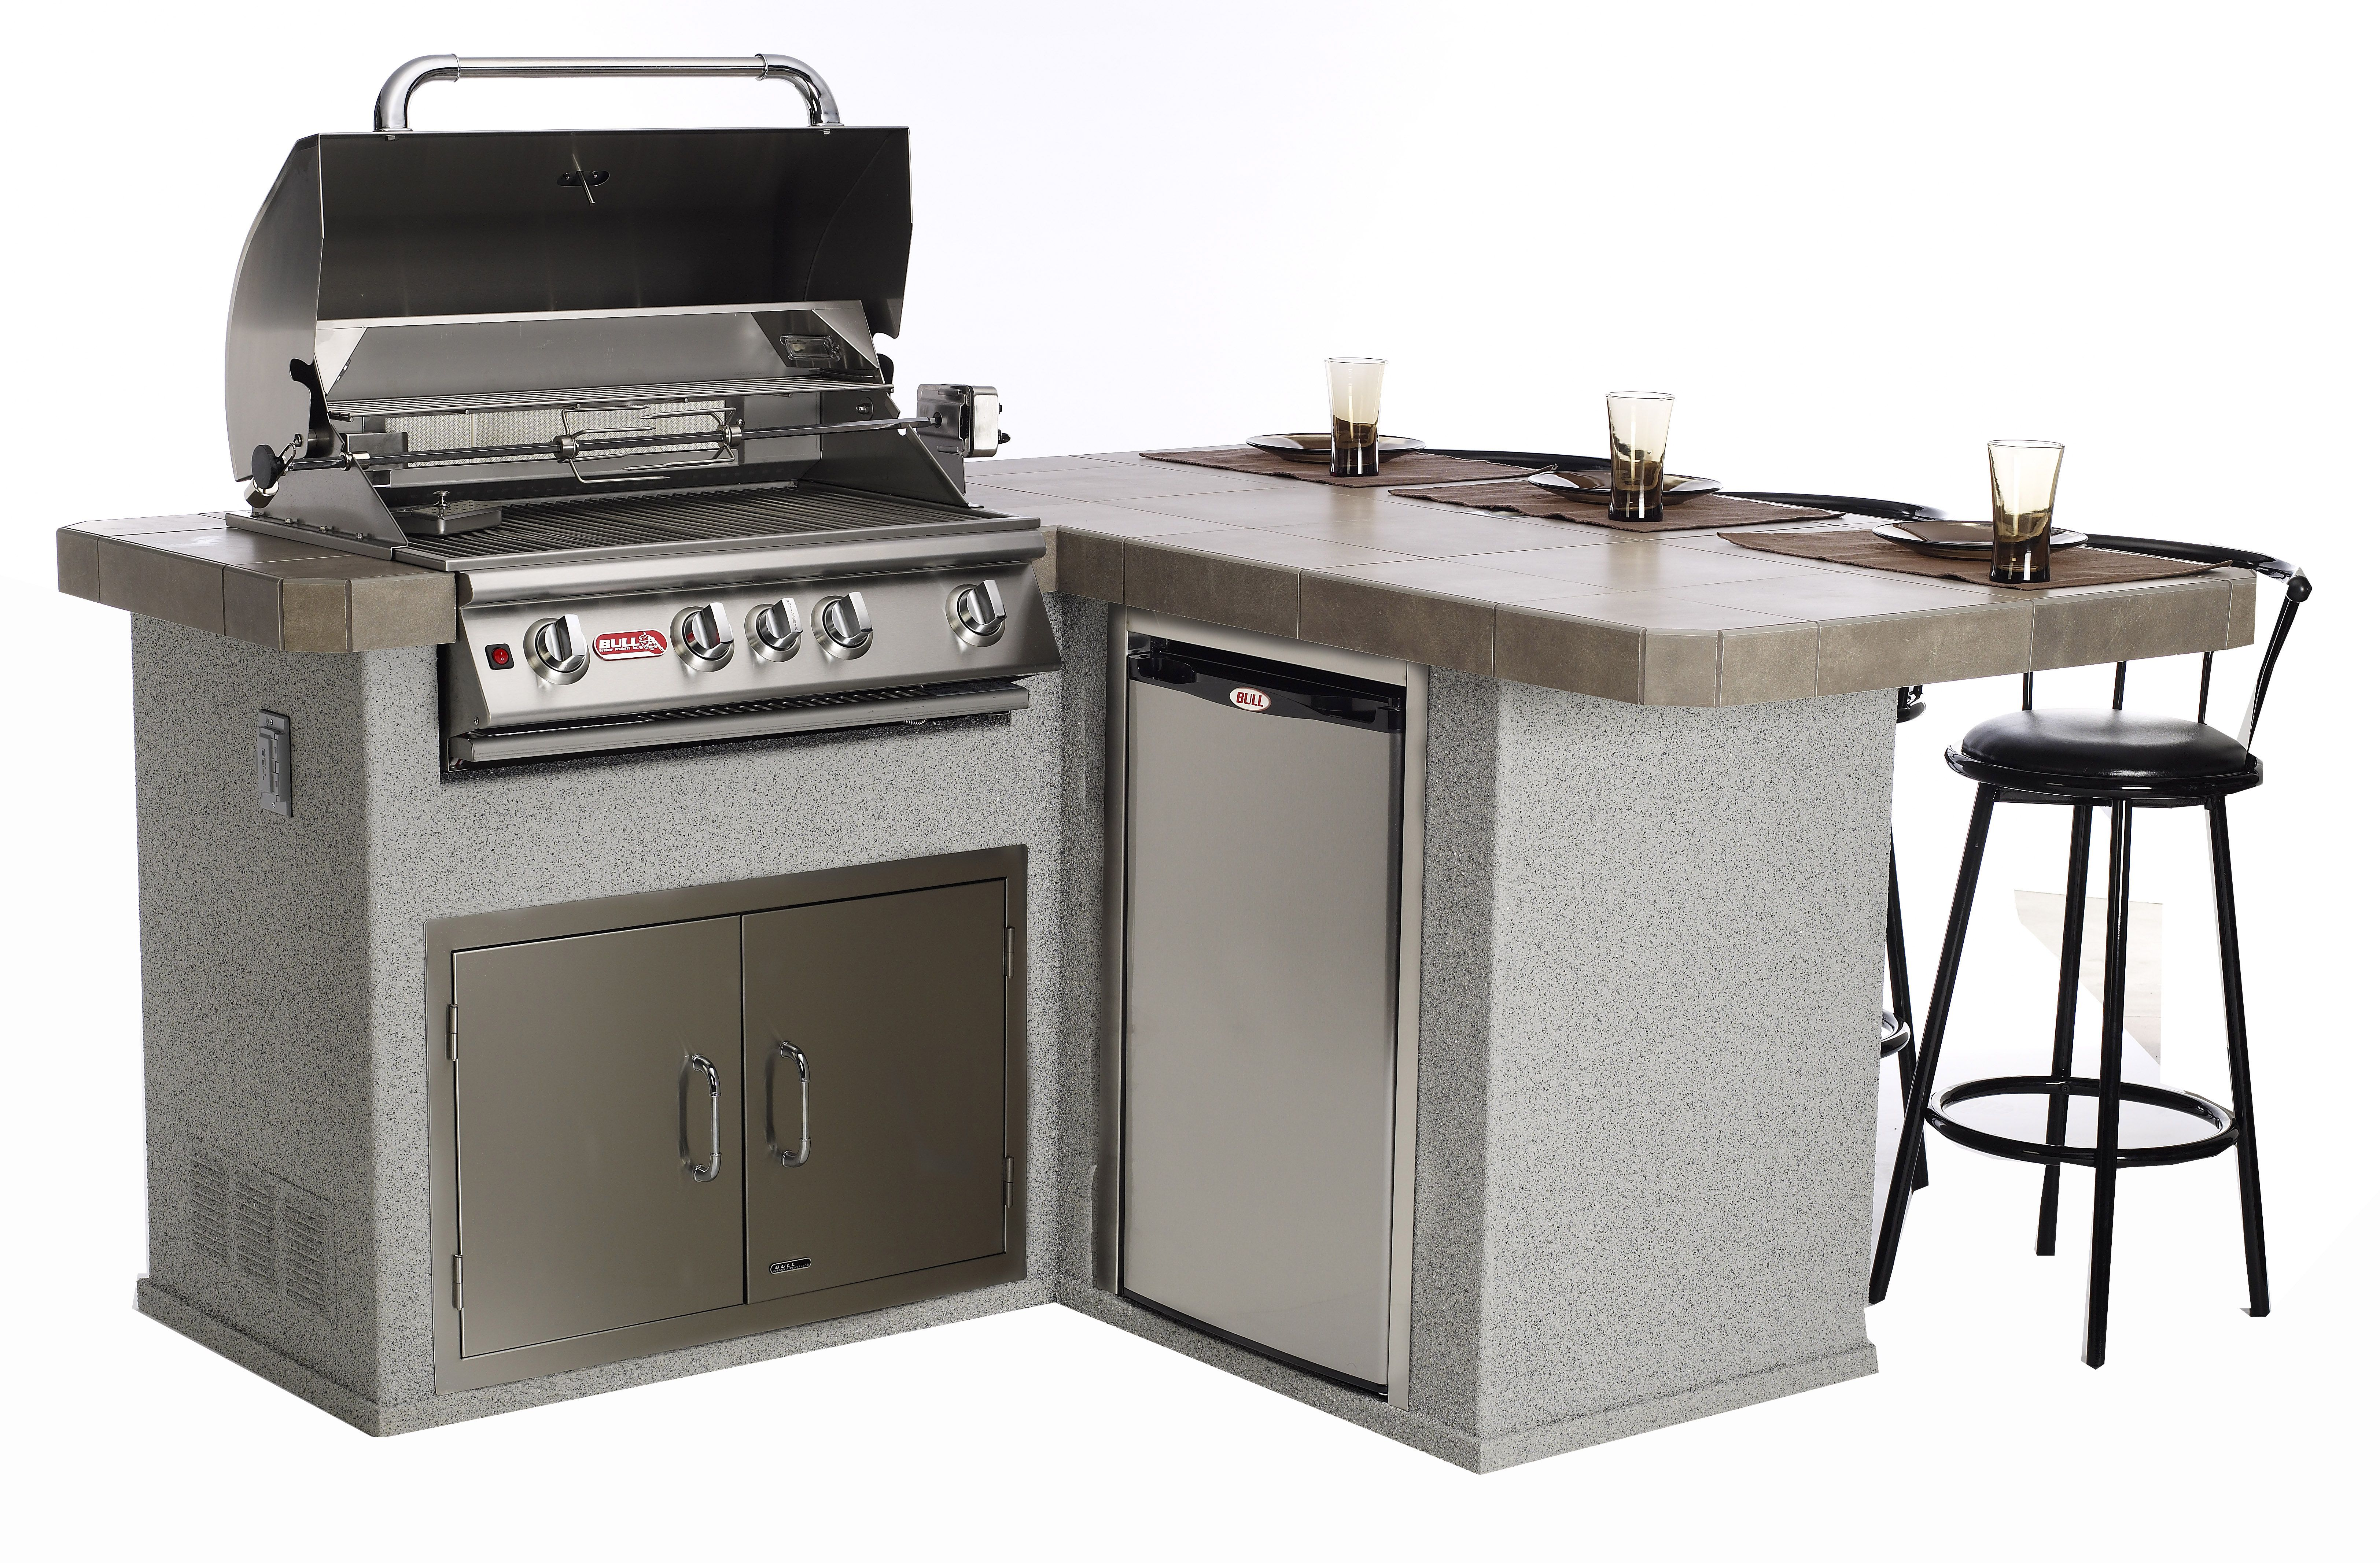 Little Q Outdoor Island Kitchen. Standard Features include: Angus BBQ  Stainless Steel 4-